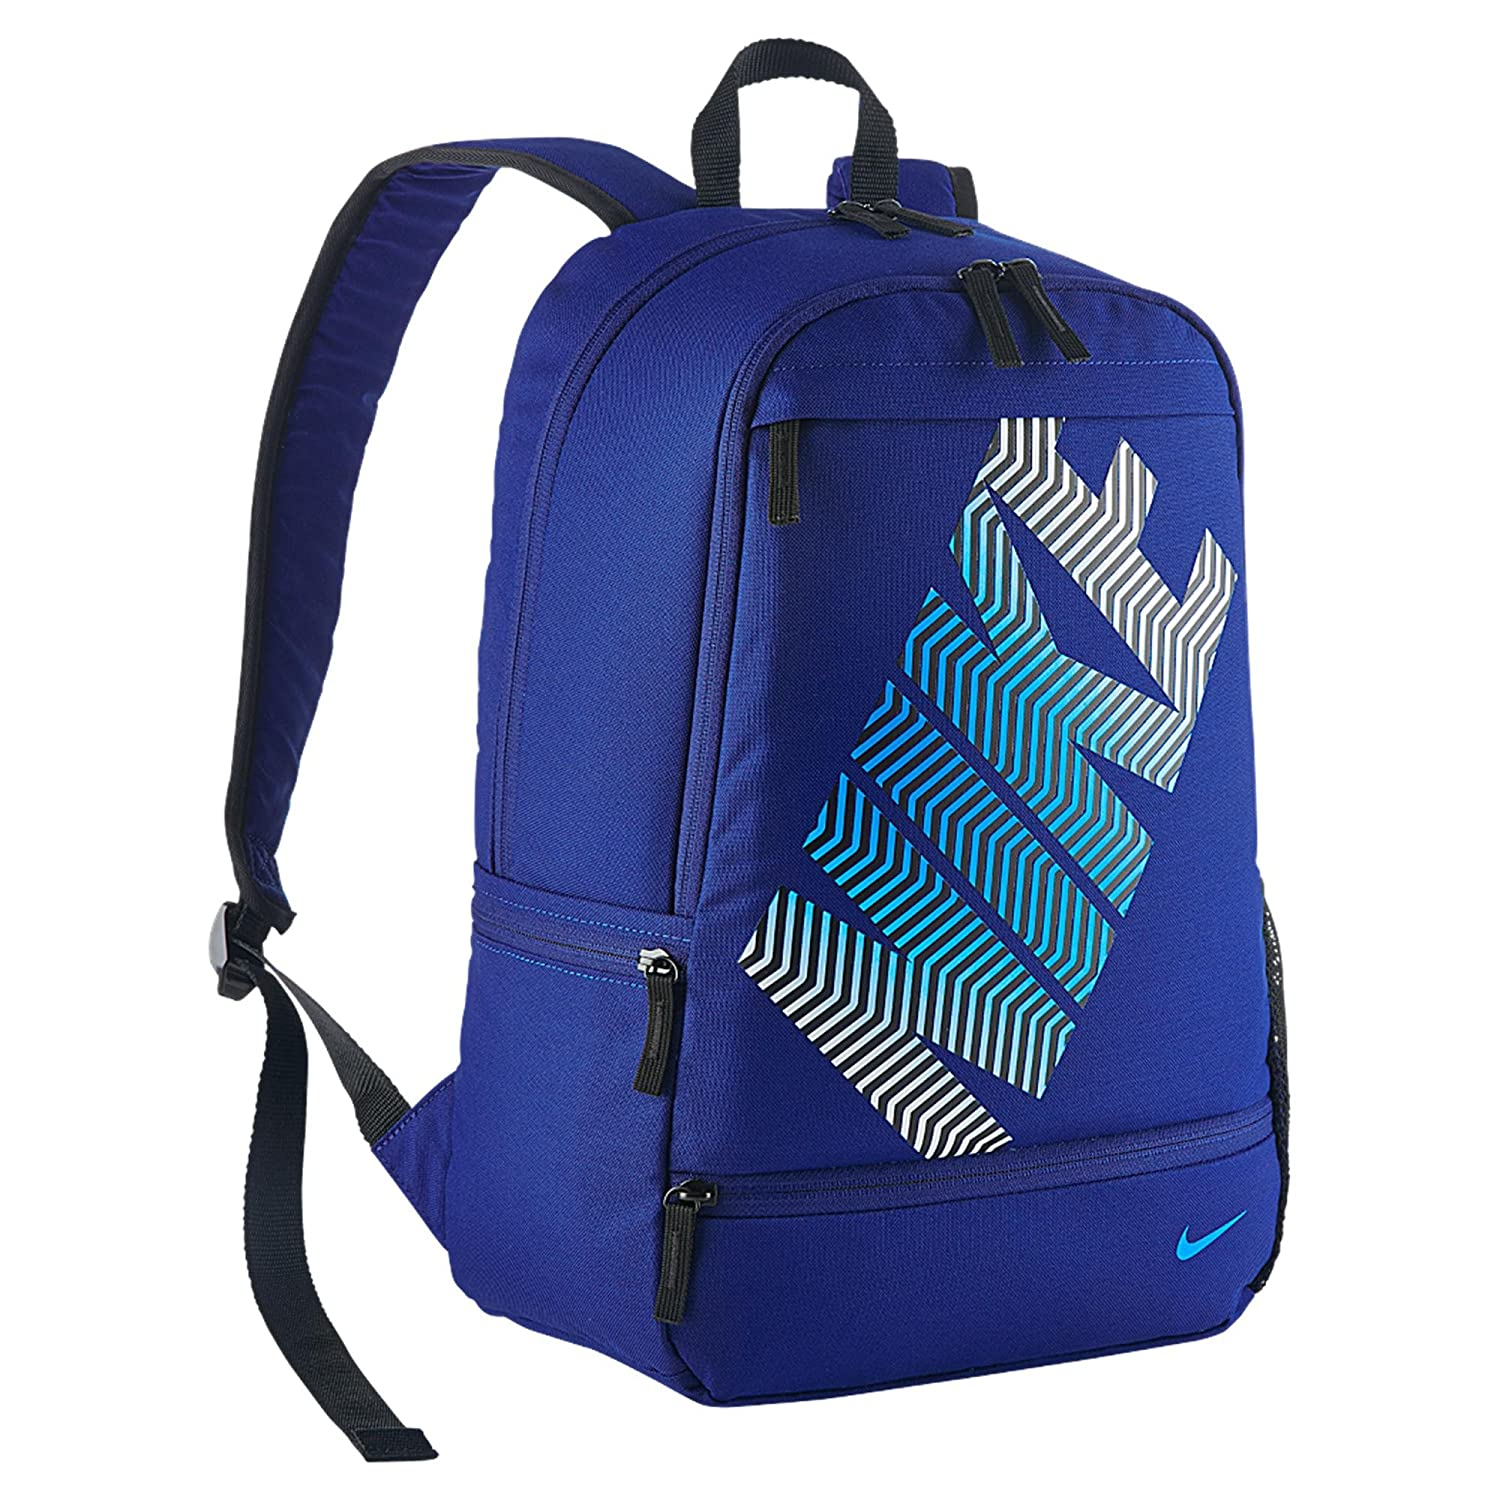 Nike Classic Line Blue Backpack  Amazon.in  Bags, Wallets   Luggage 93e5829424